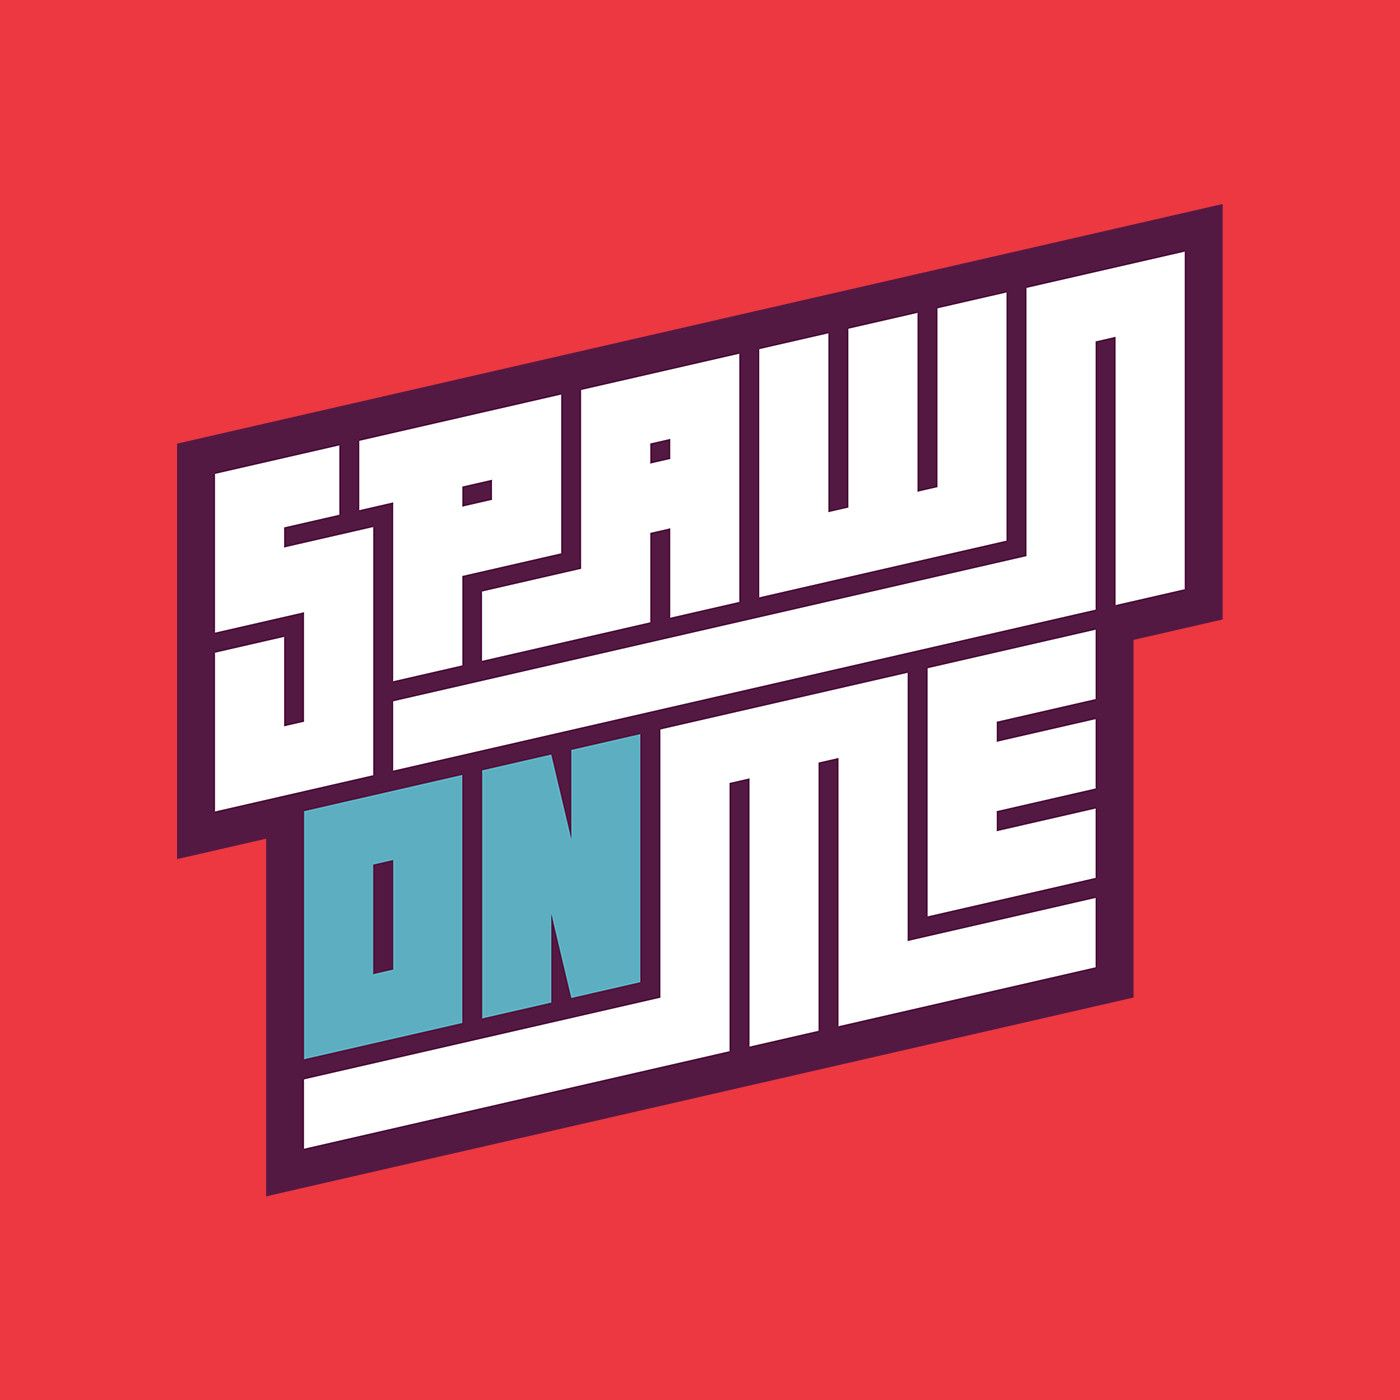 SPAWN ON ME 339 - Disintegration's Marcus Lehto, PS5 reveal and Valve's Black Lives Matter silence